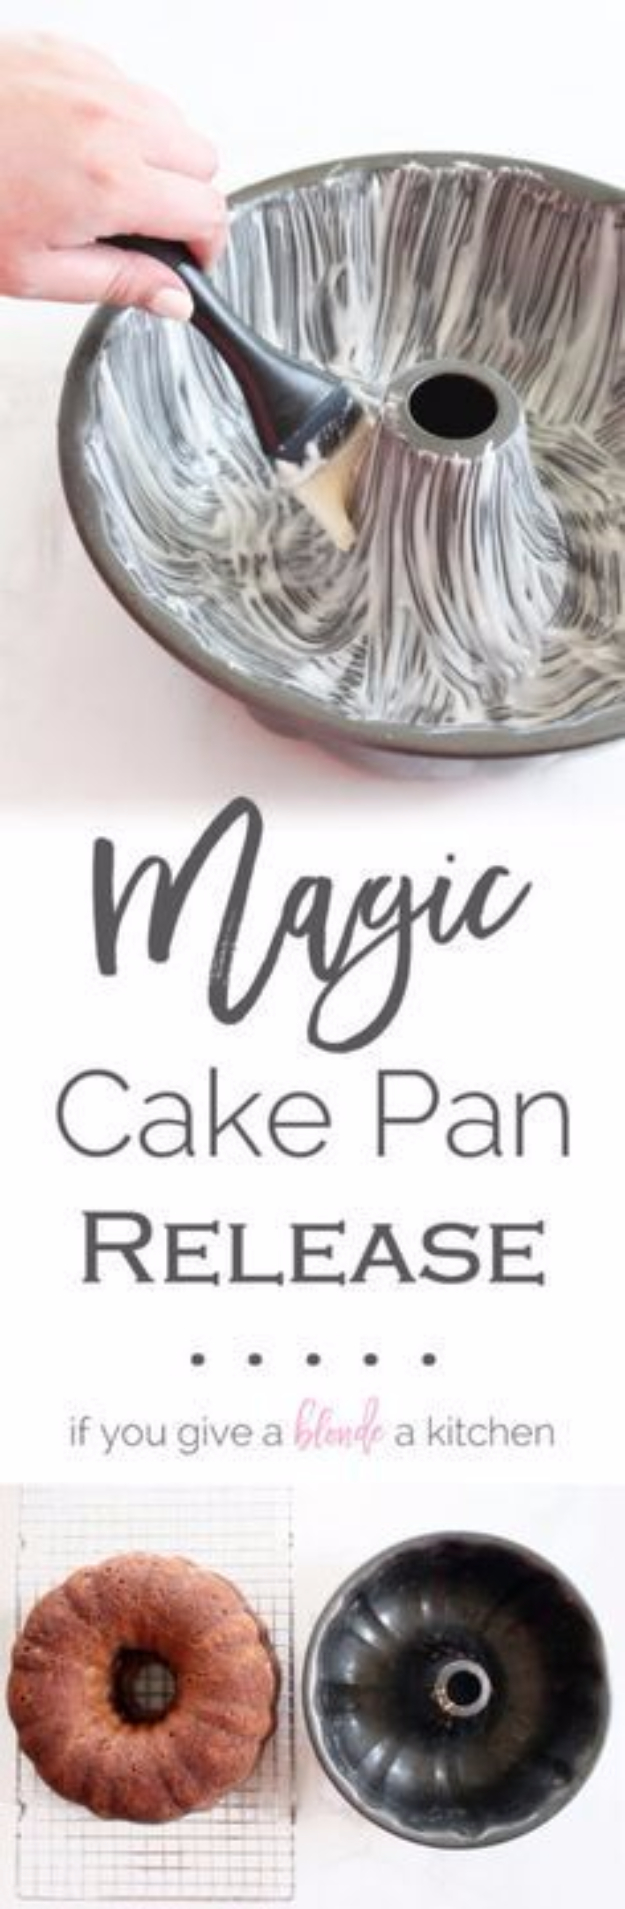 Best Baking Hacks - Magic Cake Pan Release - DIY Cooking Tips and Tricks for Baking Recipes - Quick Ways to Bake Cake, Cupcakes, Desserts and Cookies - Kitchen Lifehacks for Bakers http://diyjoy.com/baking-hacks